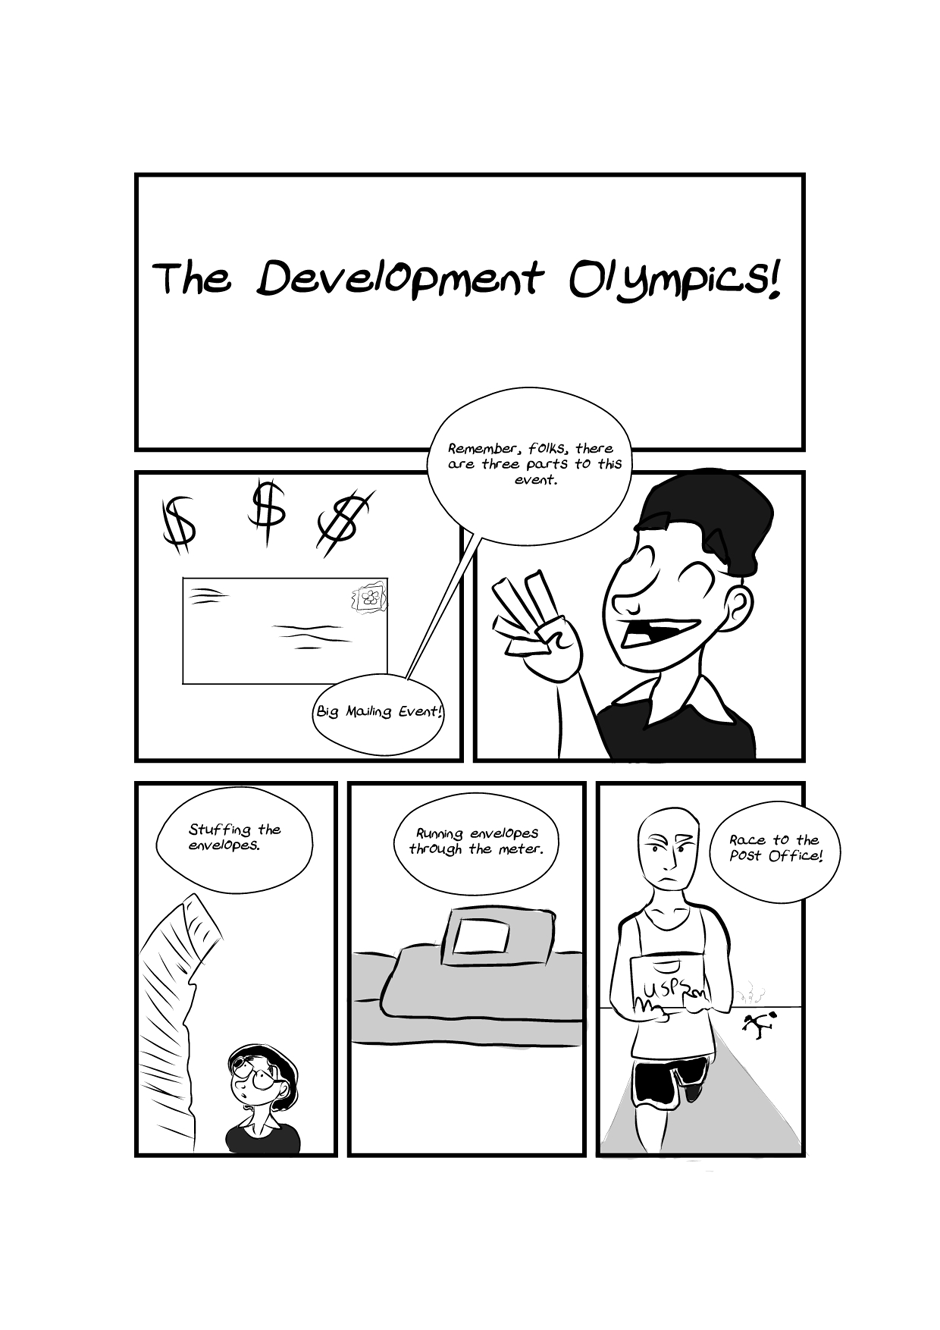 NP_DevelopmentOlympics02